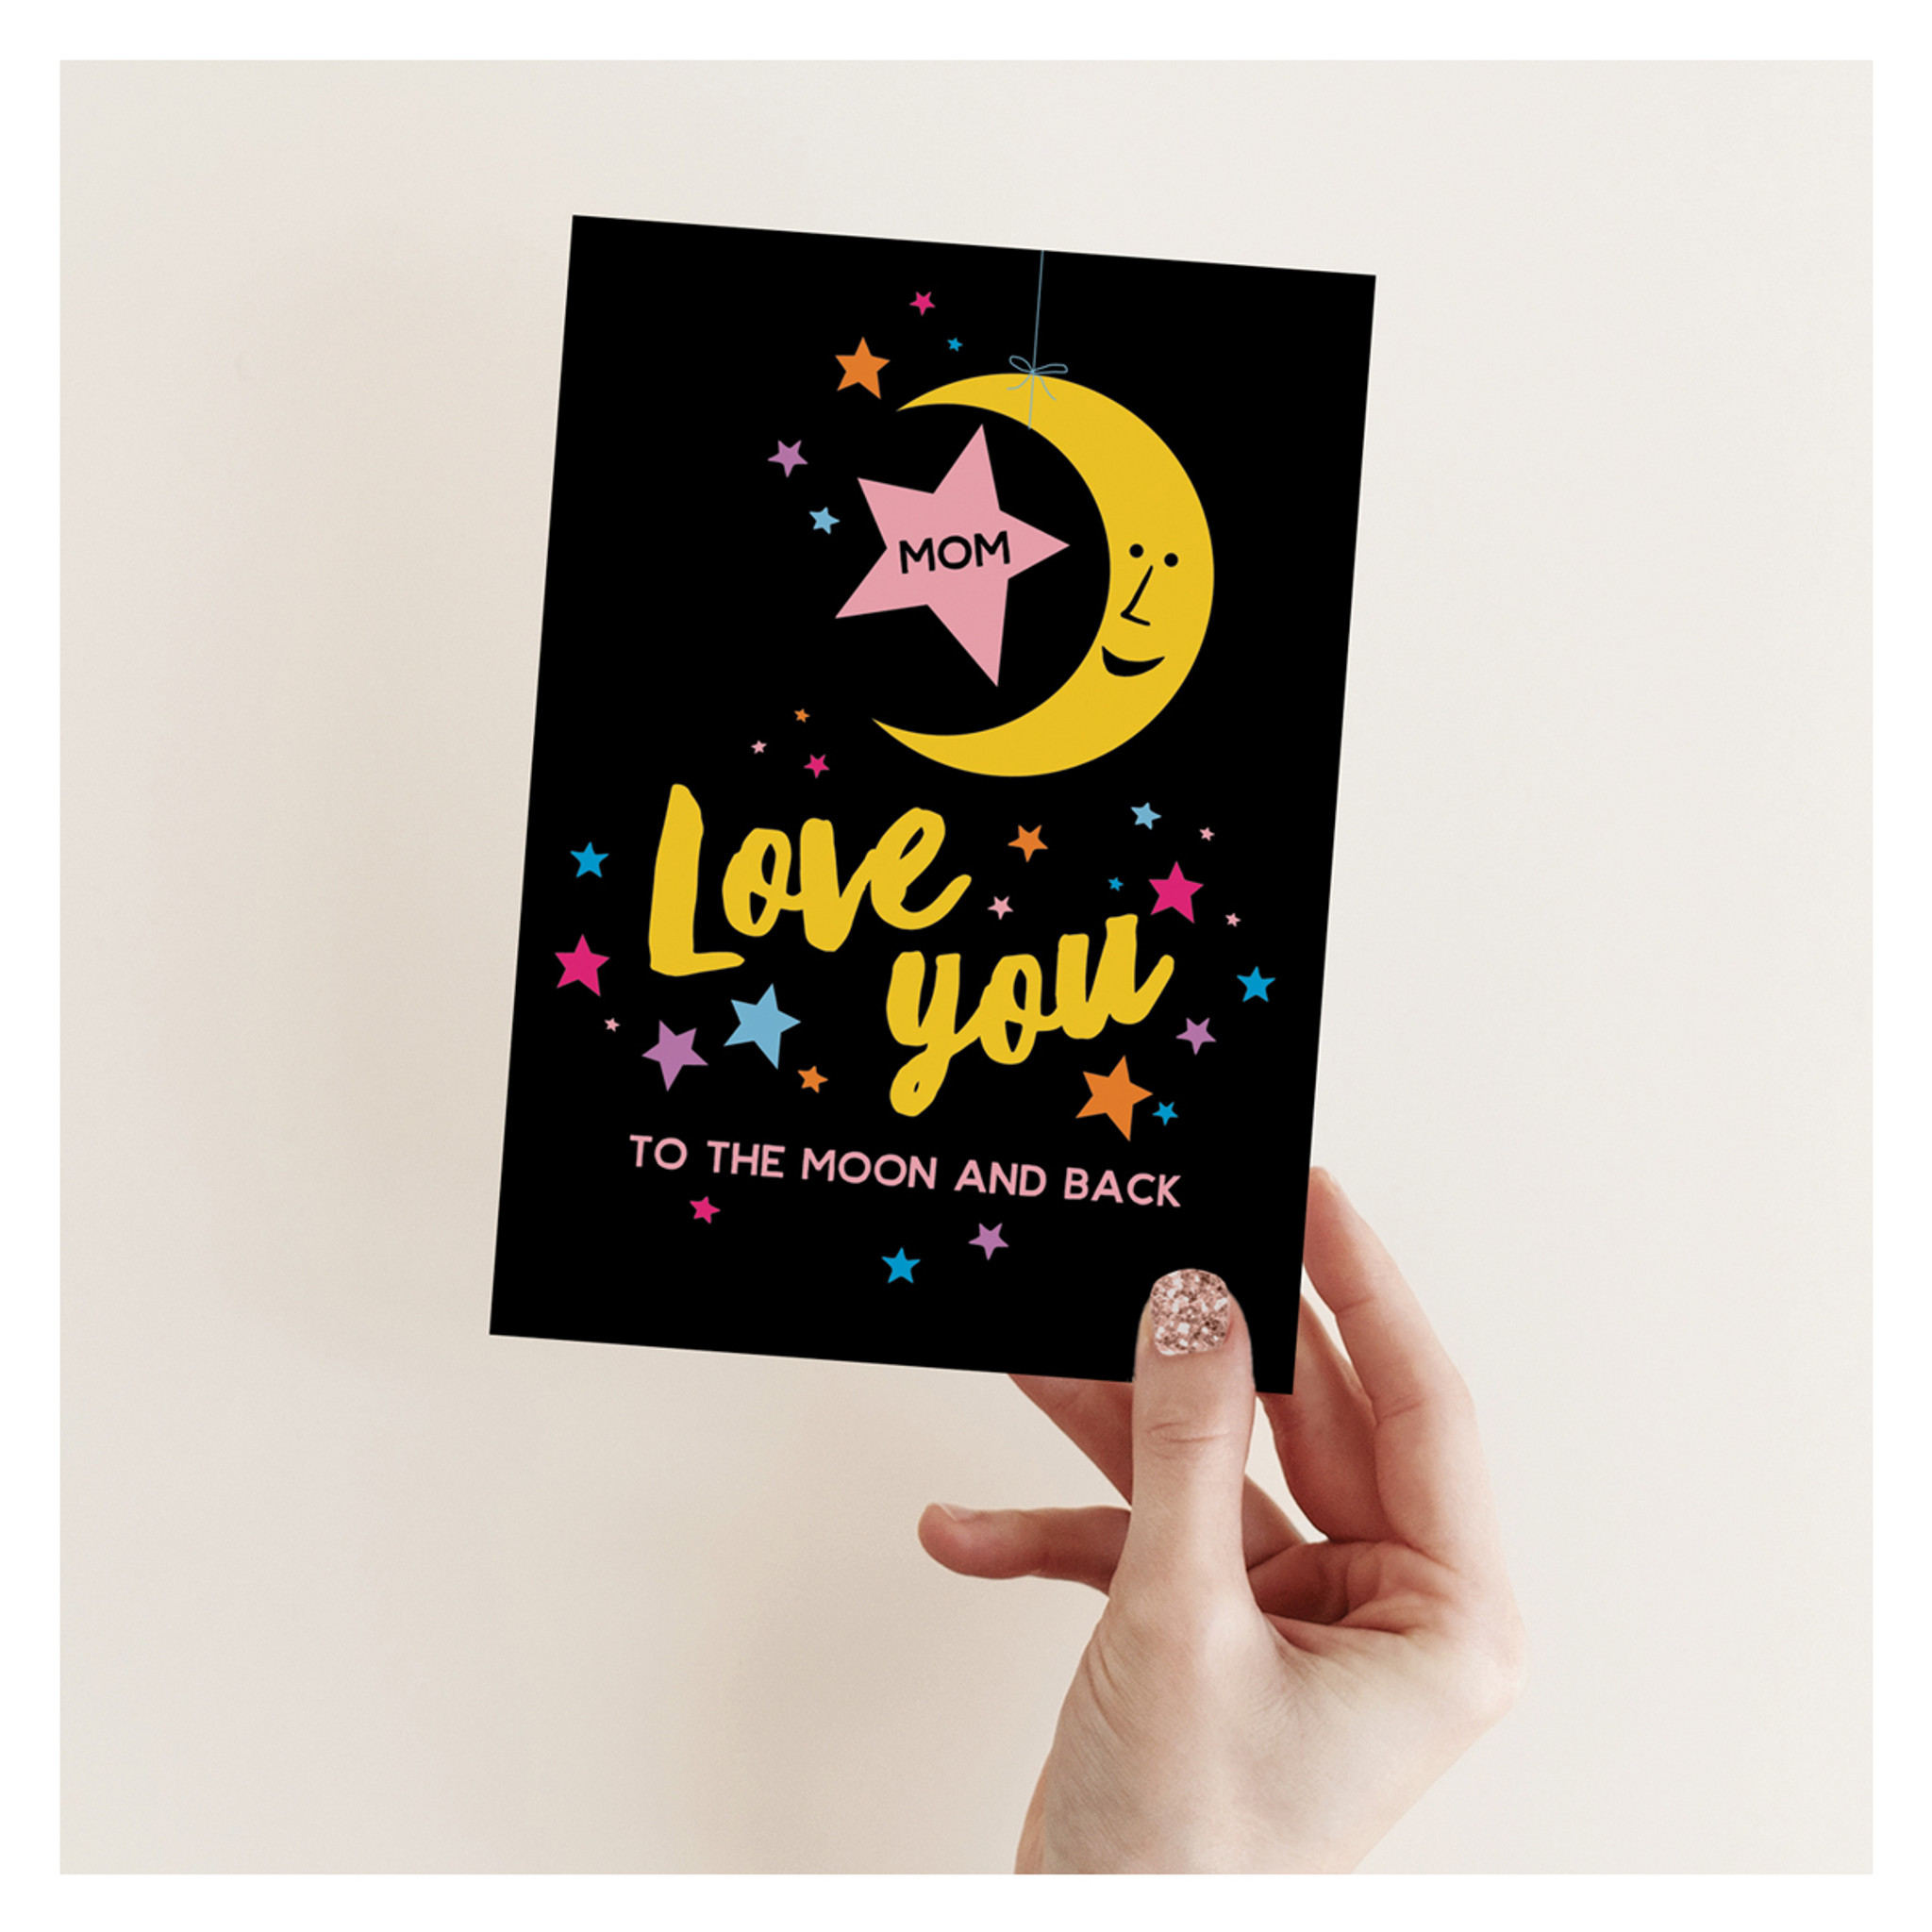 Mom Moon Mother's Day Card